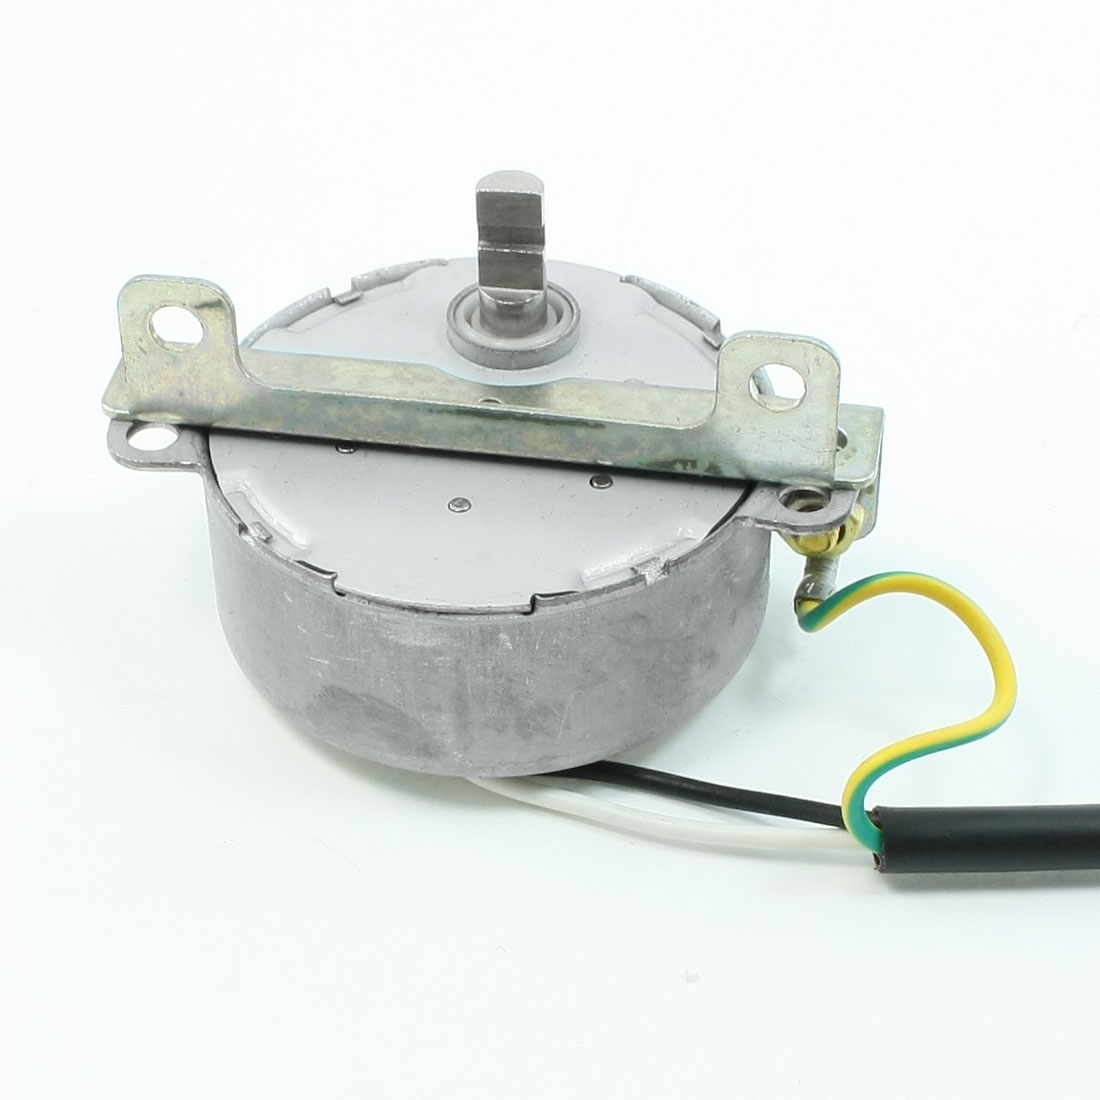 Microwave Oven Turntable 4W 4.1/5RPM CW/CCW AC 220/240V Synchronous Motor